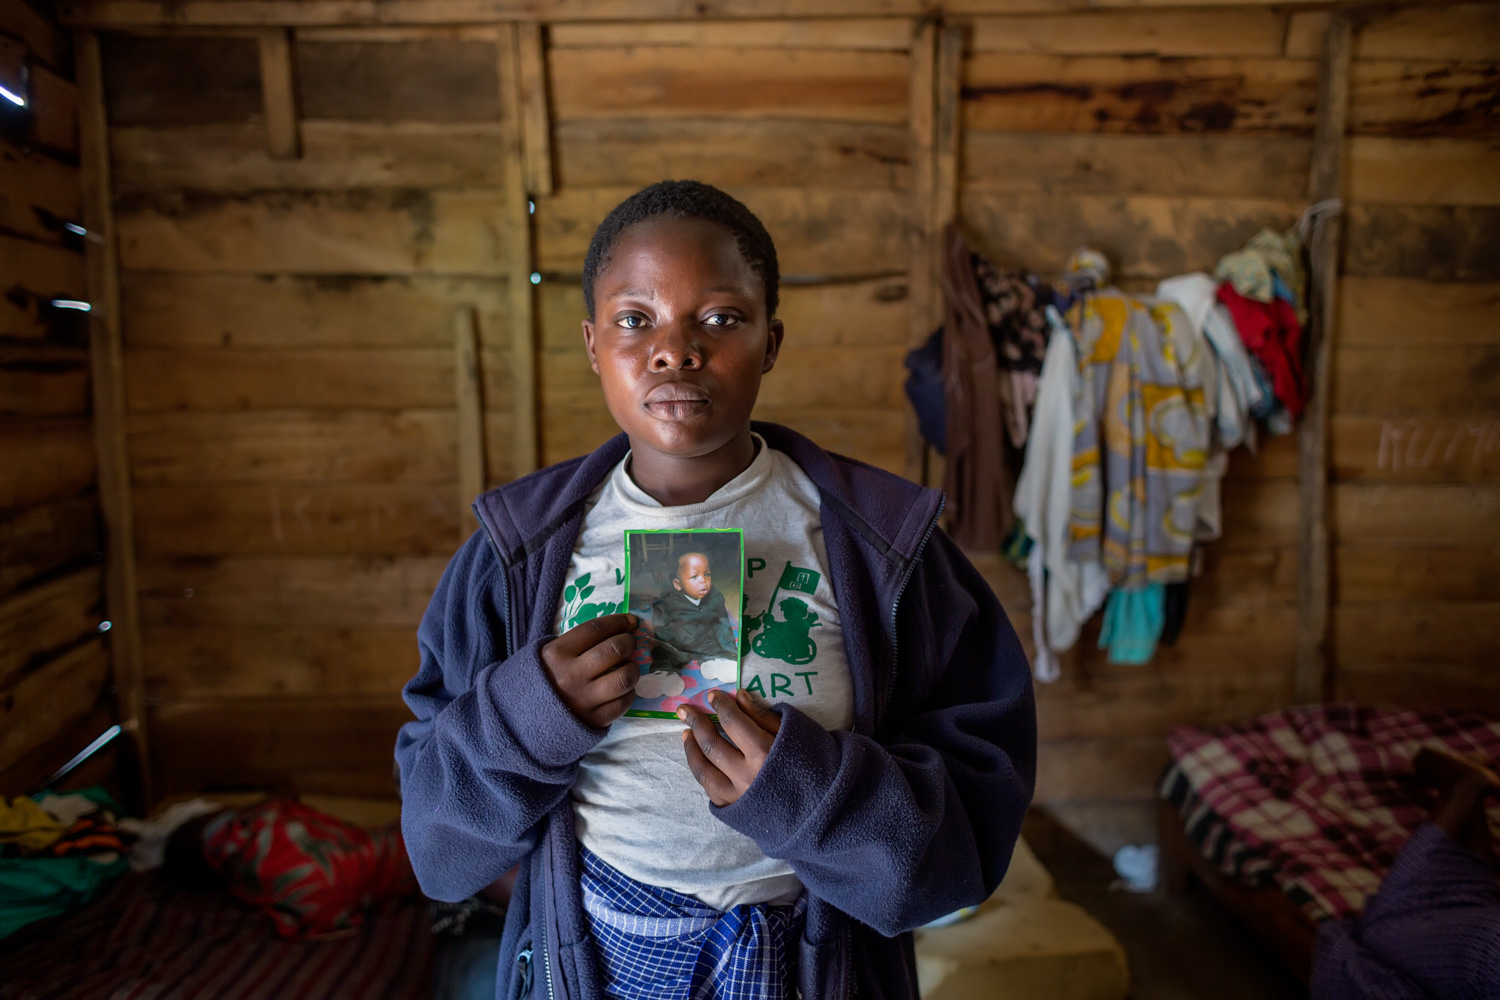 """A victim, 18 years old, holds a photo of her son, Arlain, who died as a consequence of the events of November 2012. FARDC attacked houses all over the Minova, including a center for rape survivors, run by human rights activist and rape survivor herself, Rebecca Masika. Many of the women at the center -- already victims of rape -- were raped again by the soldiers. """"When they pillaged, they also stole my son. They put him in a suitcase and left. We found him a few days later in the same suitcase, abandoned near our center. He was so ill afterwards. He died a month later."""" Arlain was 18 months old."""